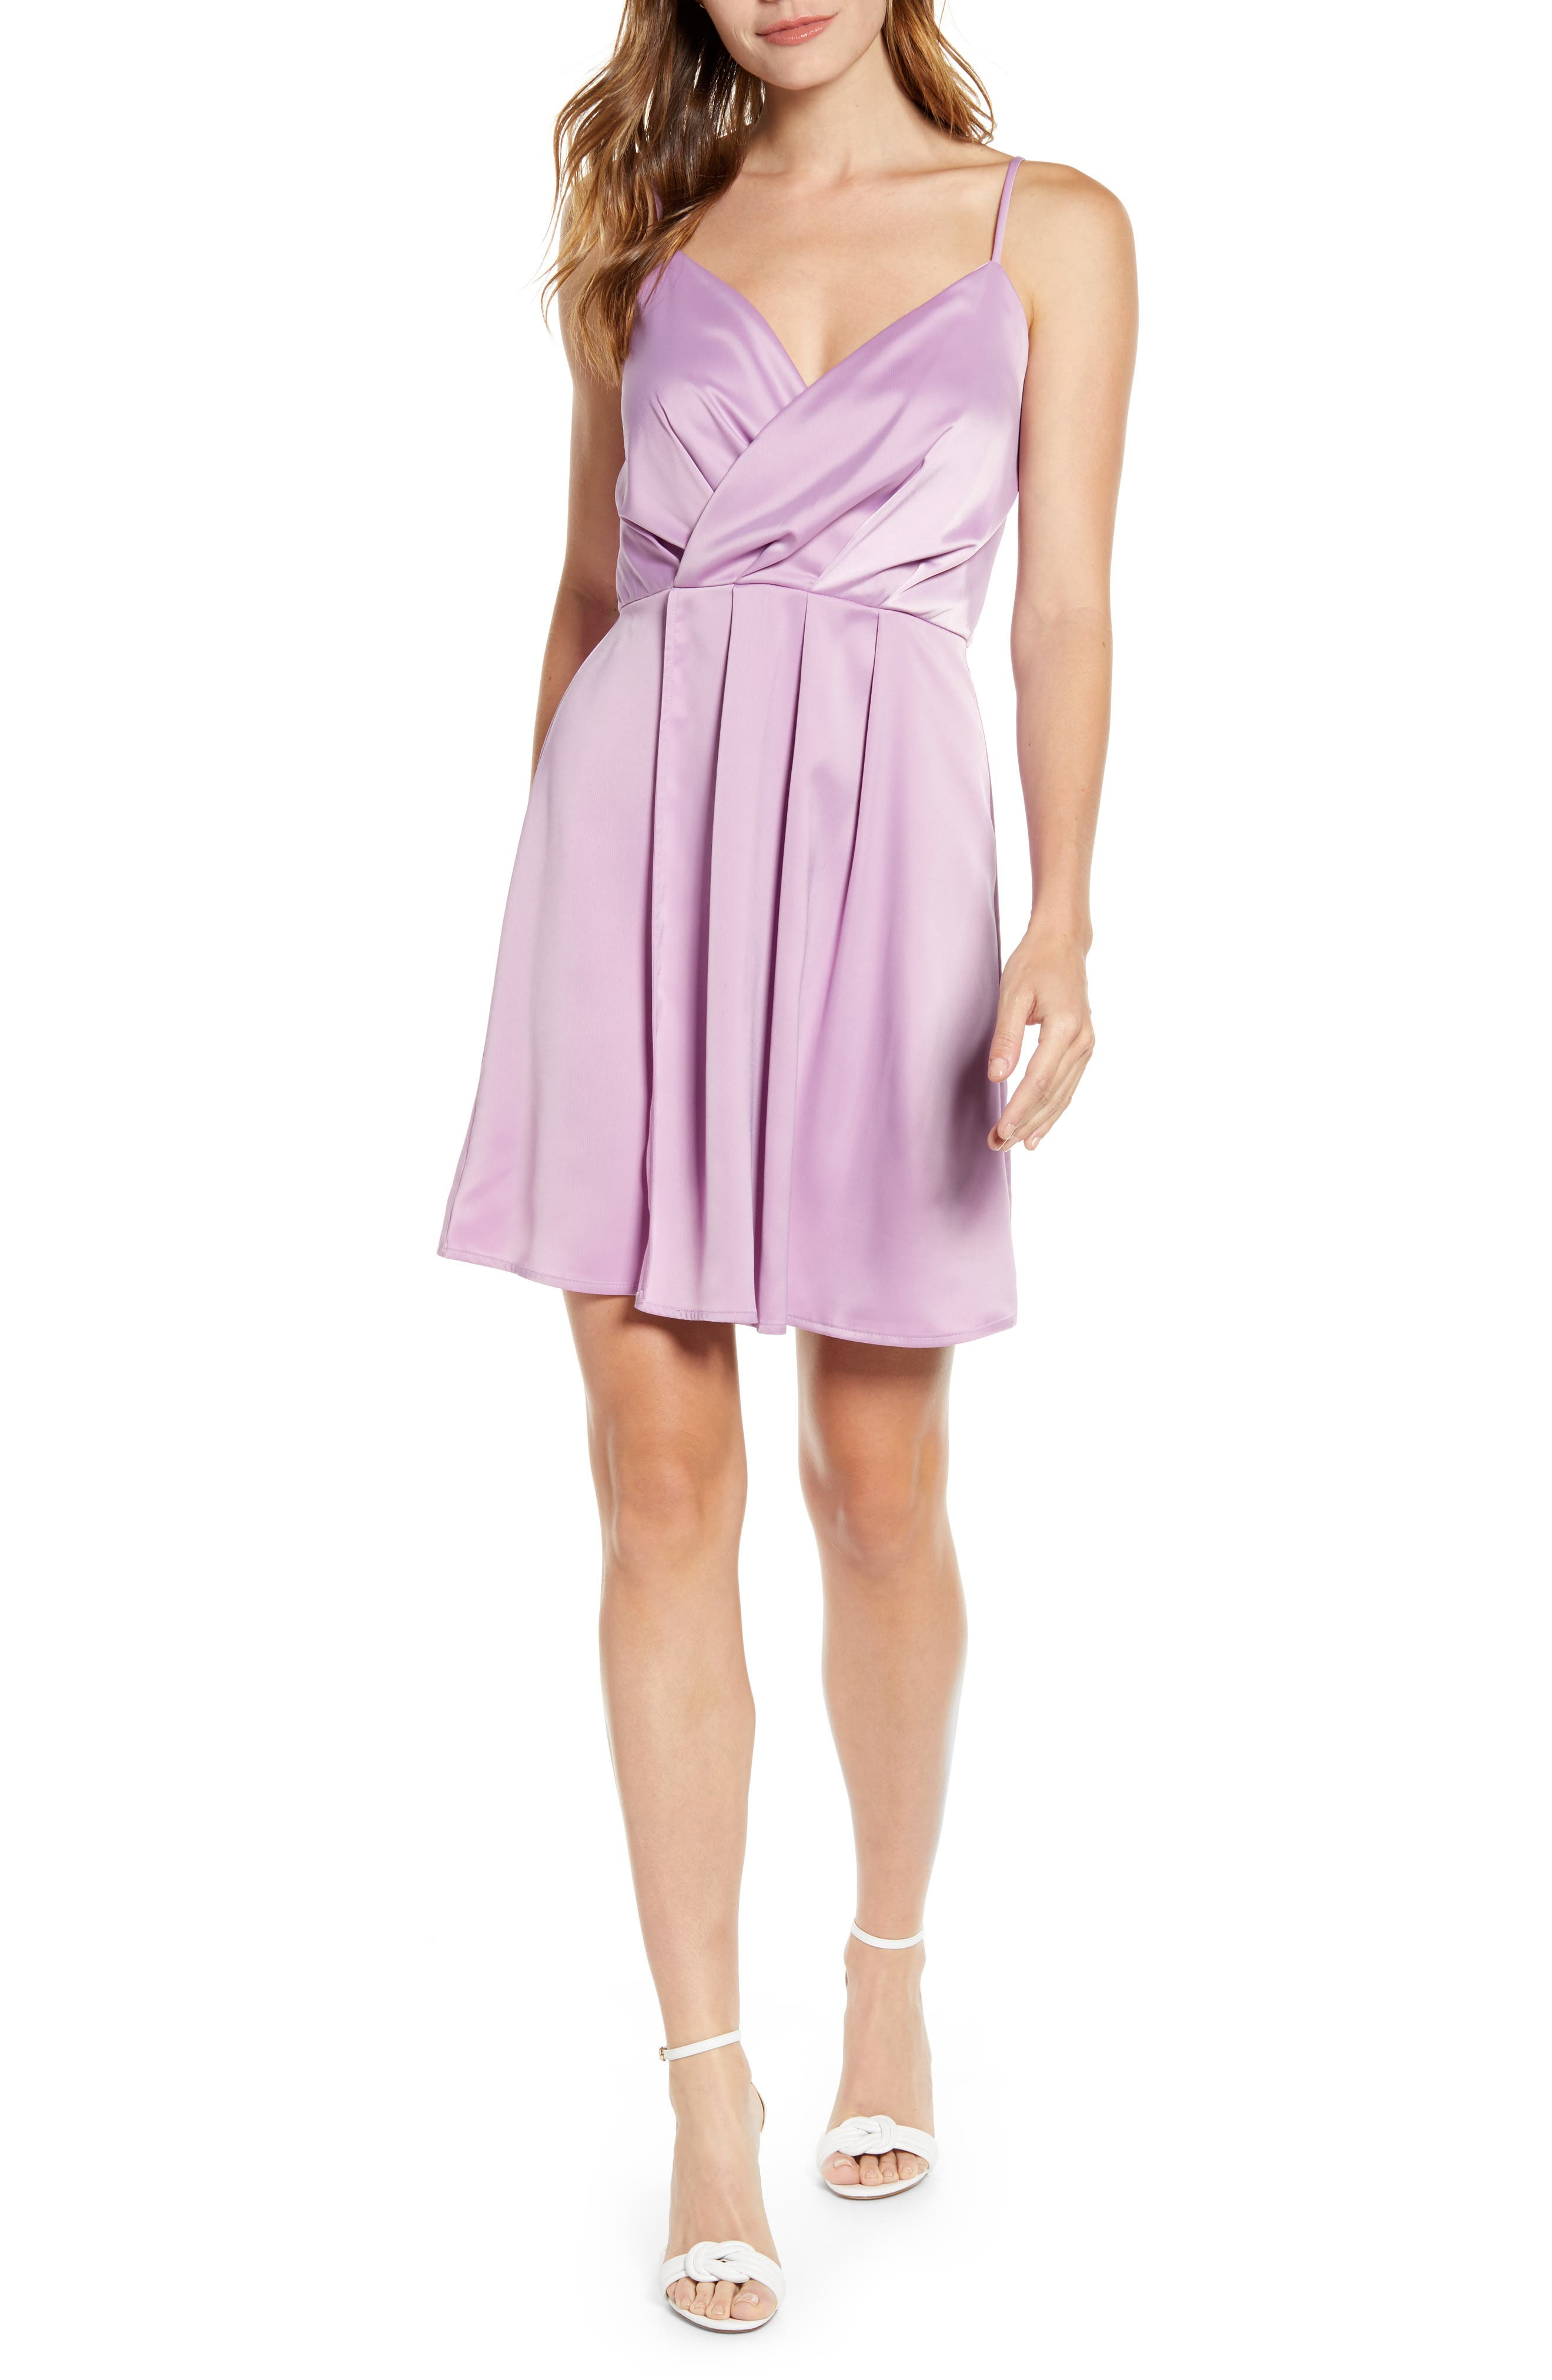 Petite Gibson X Hot Summer Nights Natalie Satin Faux Wrap Dress, Pink (Regular & Petite) (Nordstrom Exclusive)